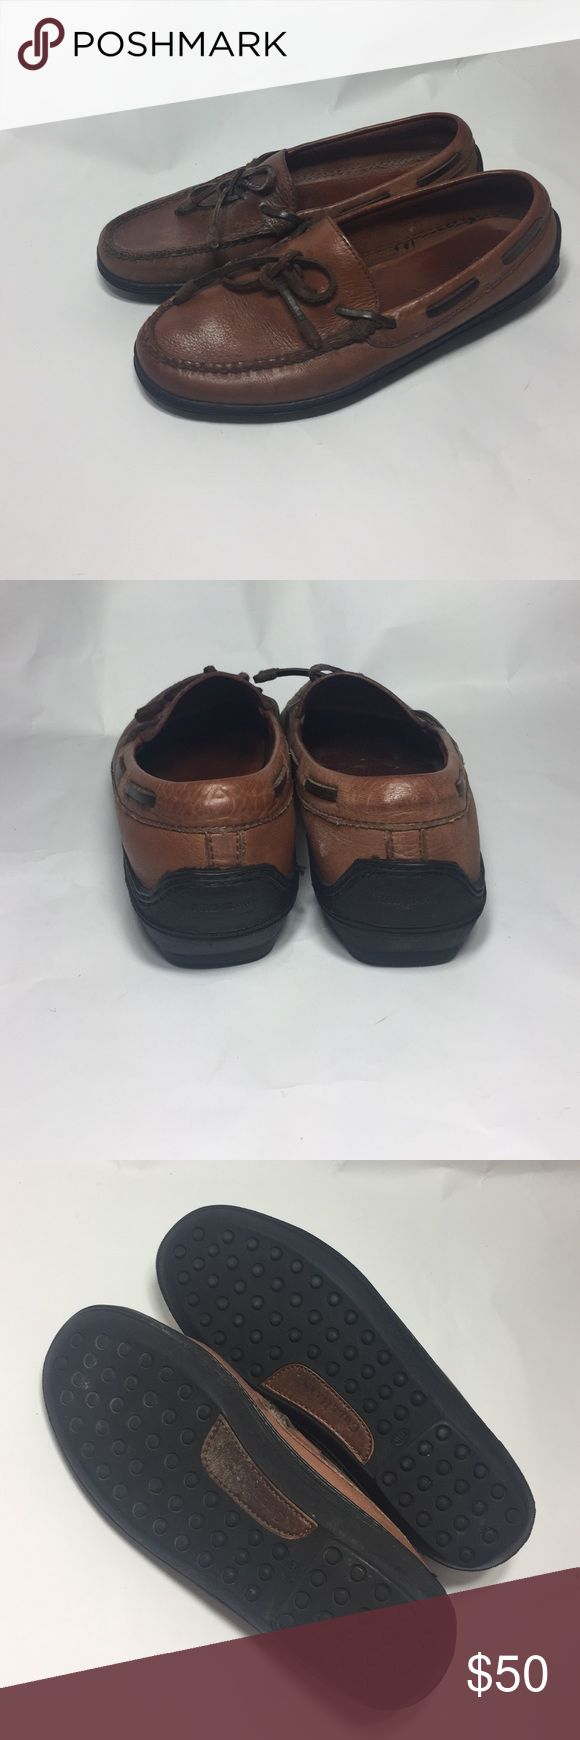 Cole Haan Country Driver Shoe NEW SZ 8.5 brown New Driving shoes. Vintage Cole Haan Country Loafer. Size 8.5 Medium. Brown. Leather. Tie detail on front. Rubber outer soles. No signs of wear besides discoloration of right shoe. I believe it can be corrected. See photos. Selling shoe as is. Cole Haan Shoes Flats & Loafers